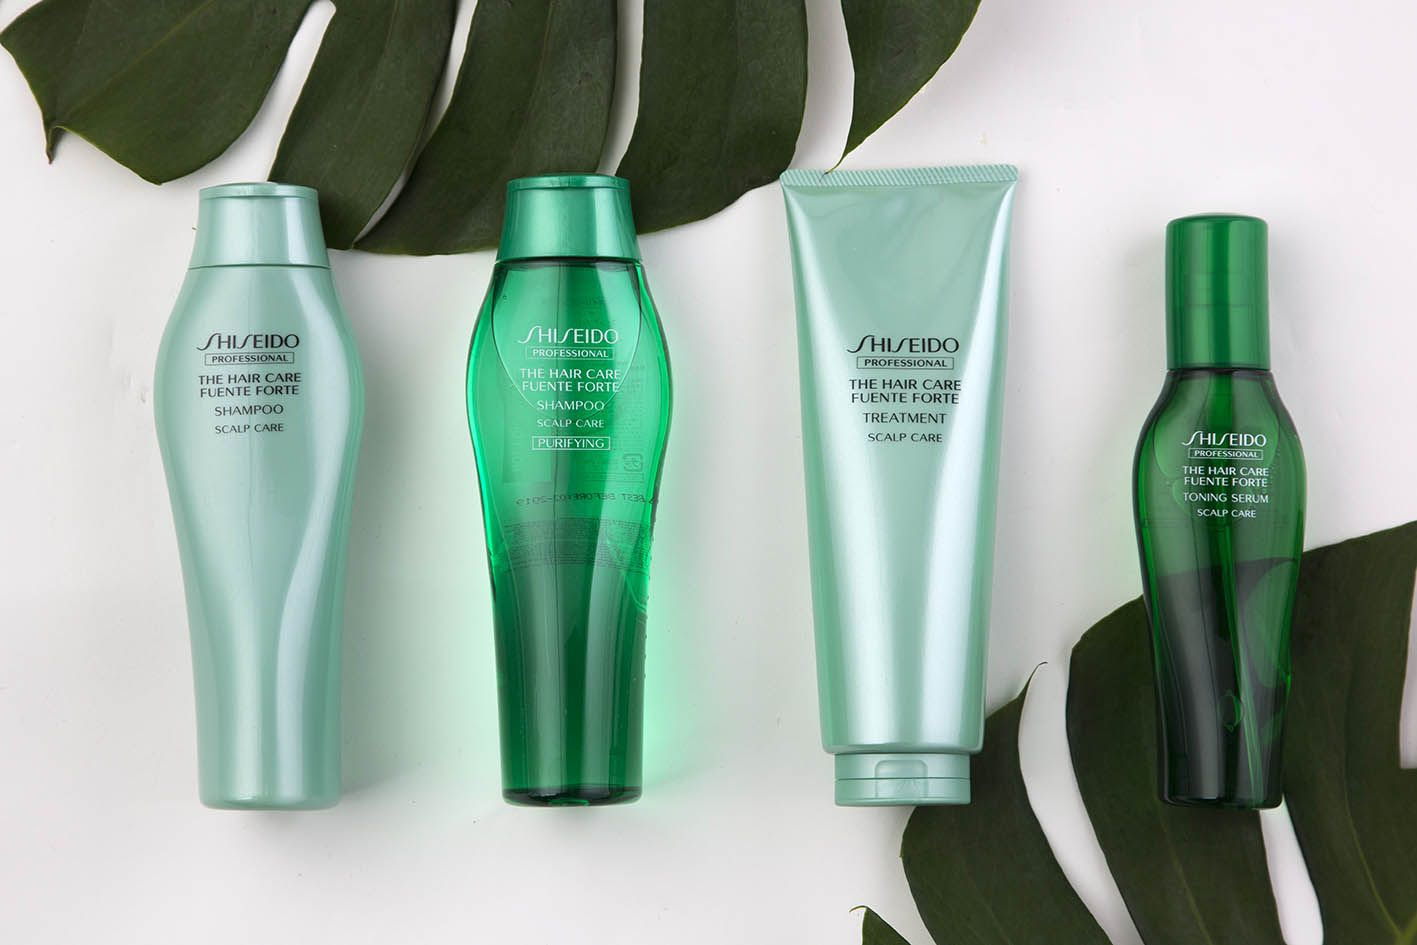 Shiseido Professional Fuente Forte Product Line Photography Shampoo Hair And Scalp Singapore